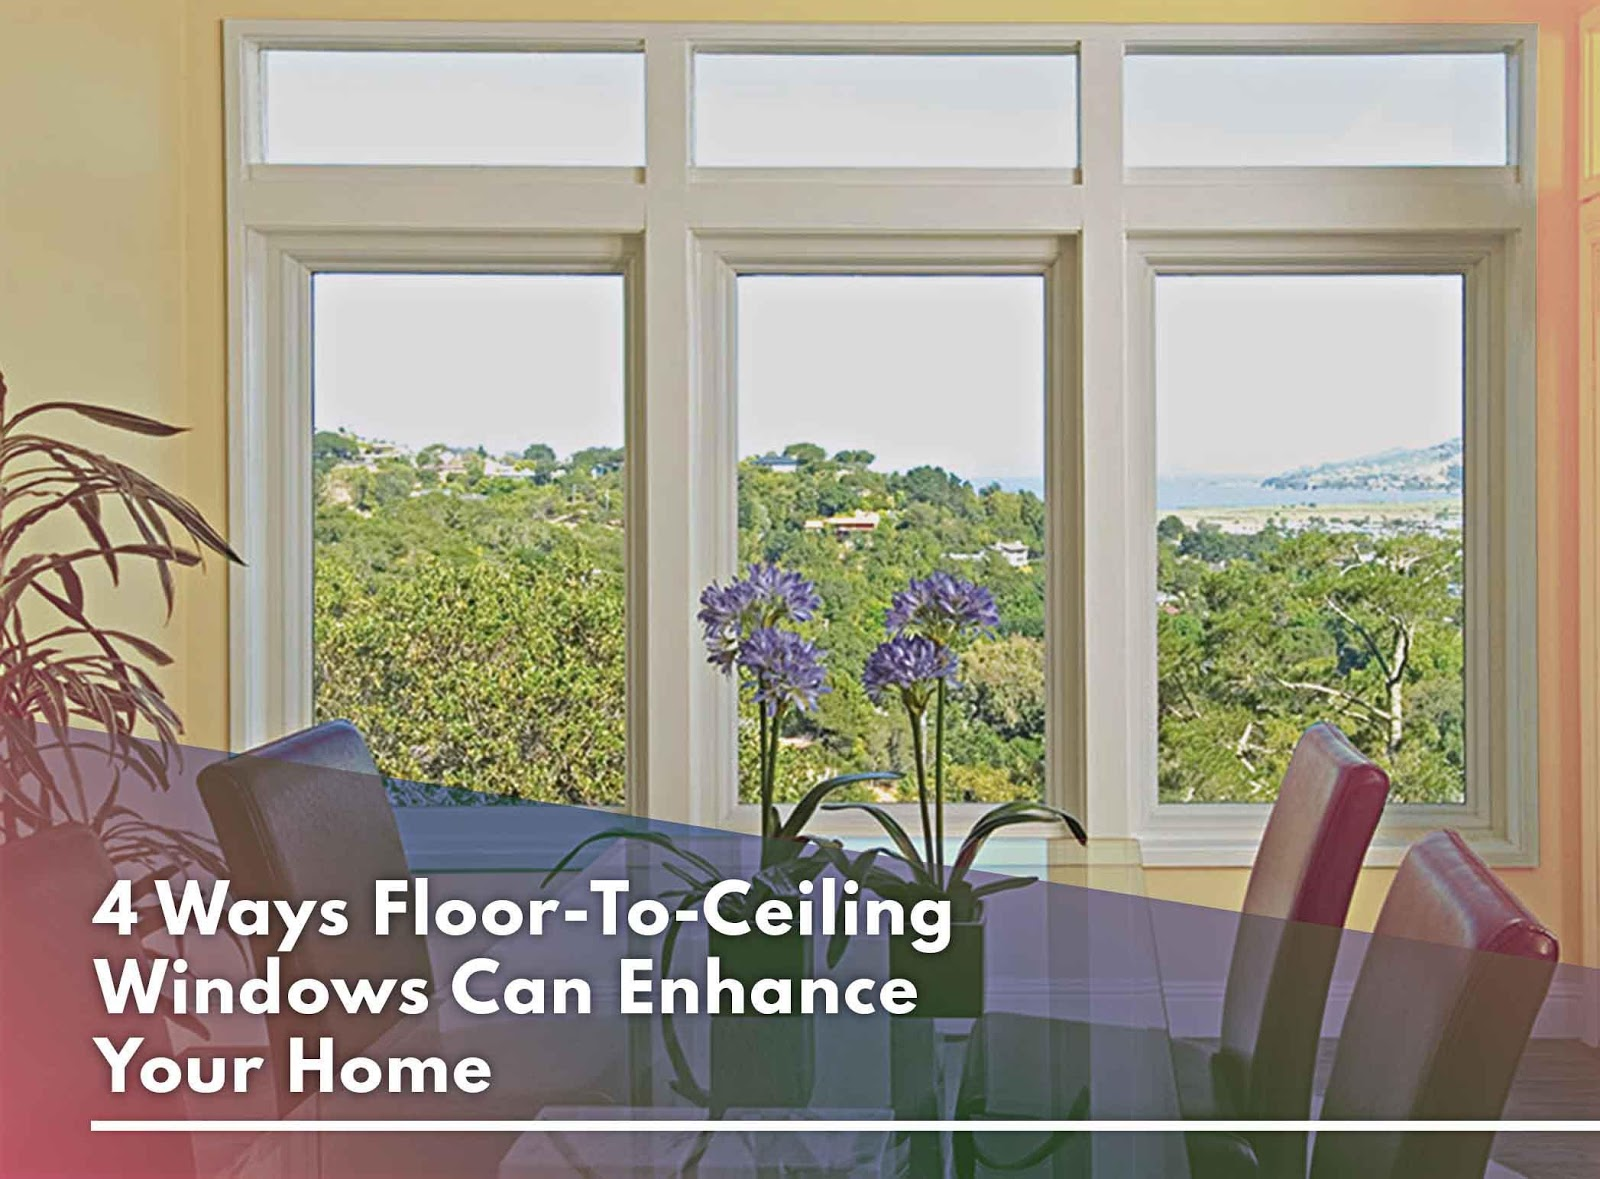 4 Ways Floor-To-Ceiling Windows Can Enhance Your Home